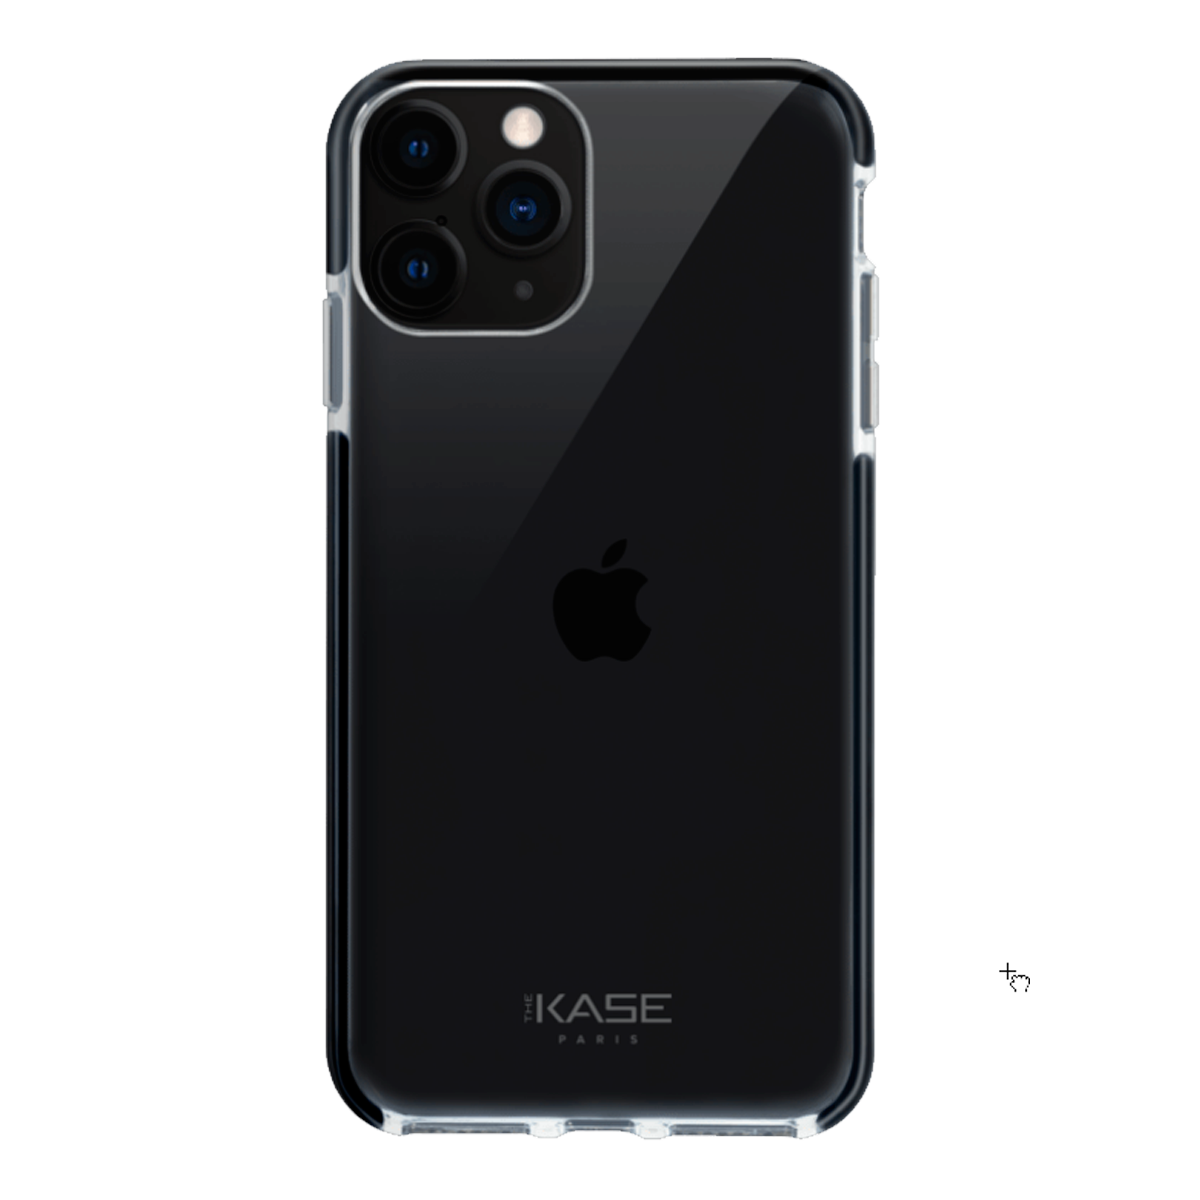 Capa de Smartphone The Kase Sport Mesh Apple iPhone 11 Pro Preto Brilhante